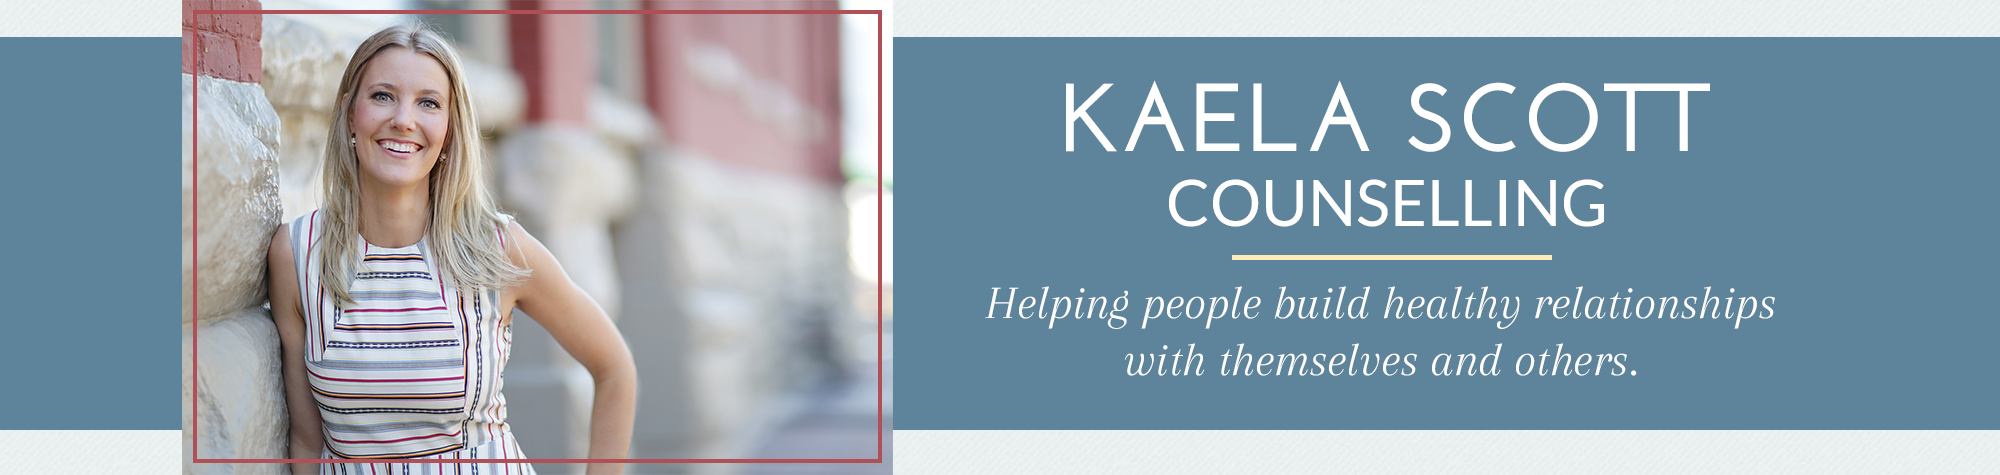 Kaela Scott Counselling header image